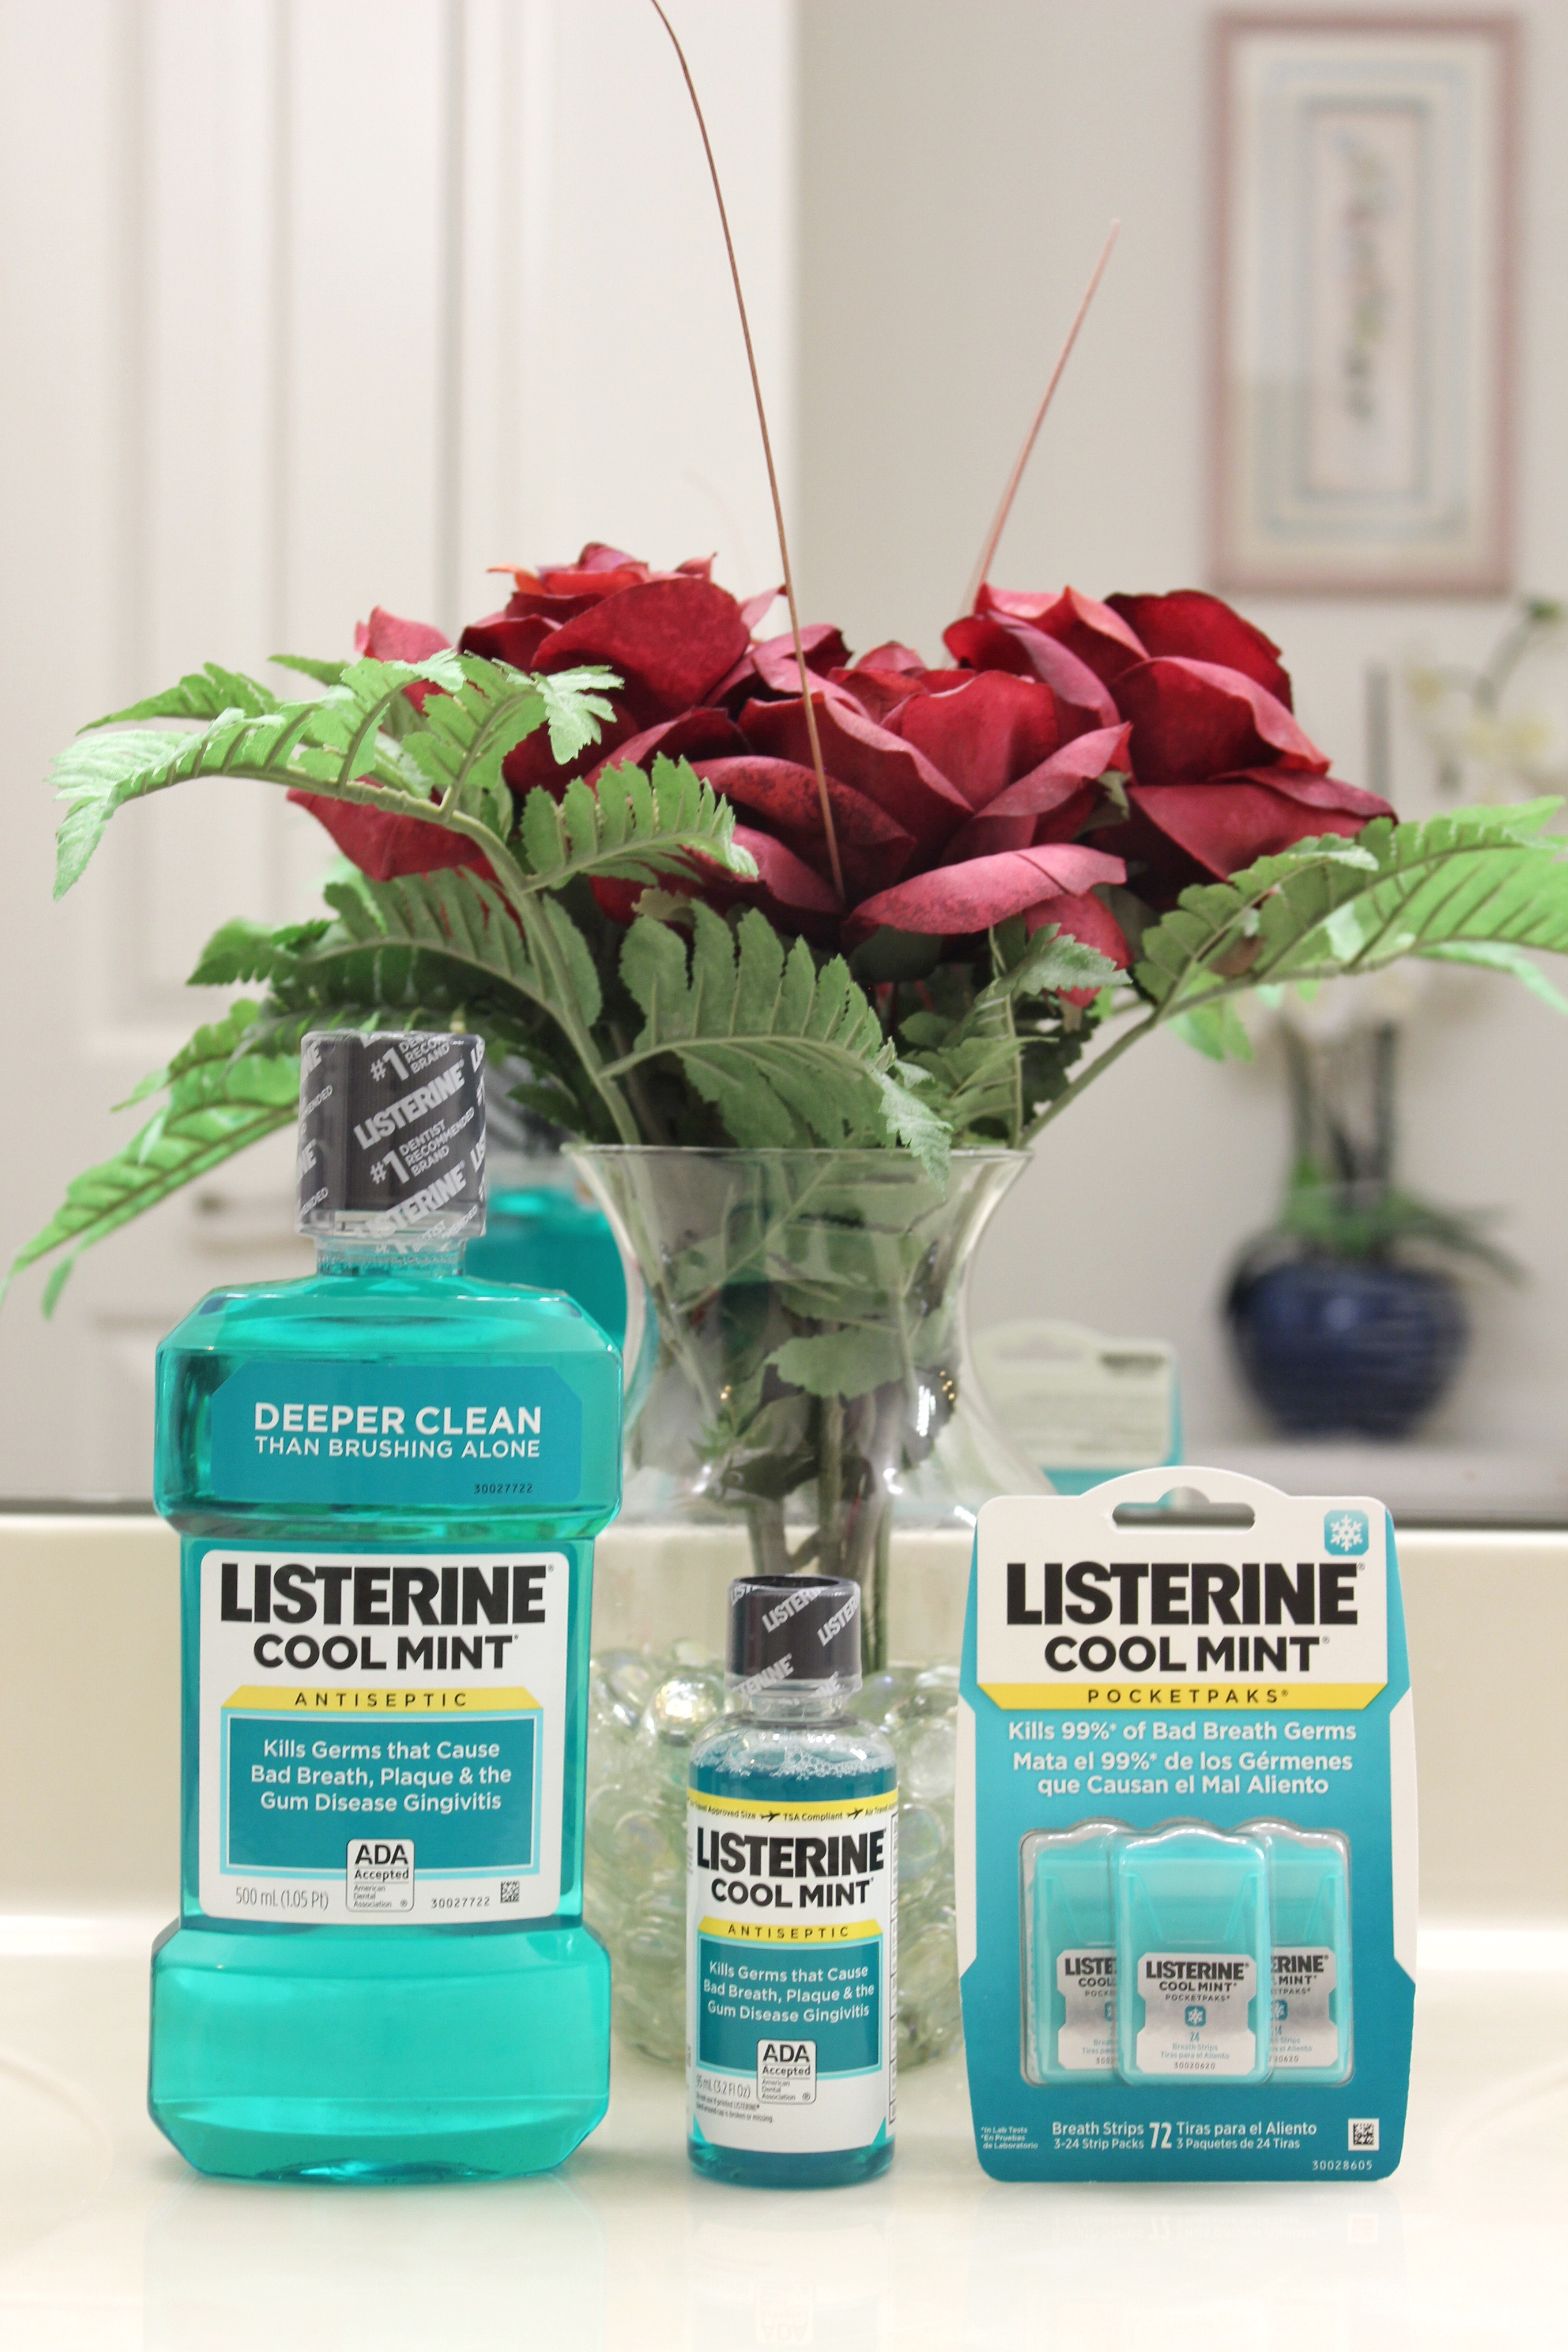 LISTERINE® Antiseptic Cool Mint